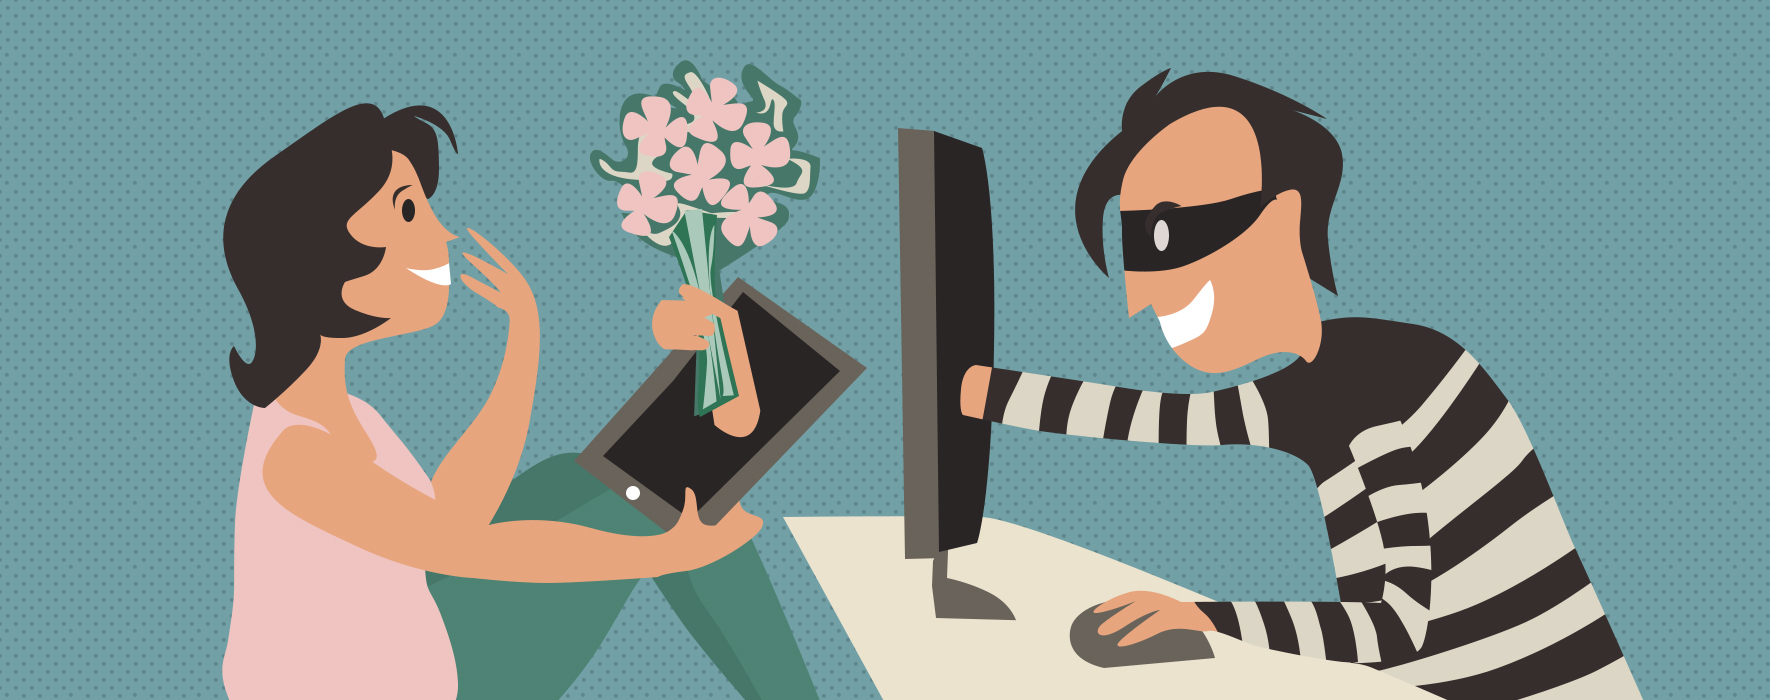 Confidence scams carried out online are still rampant. (Photo credit: R. Stevens/CREST Research)